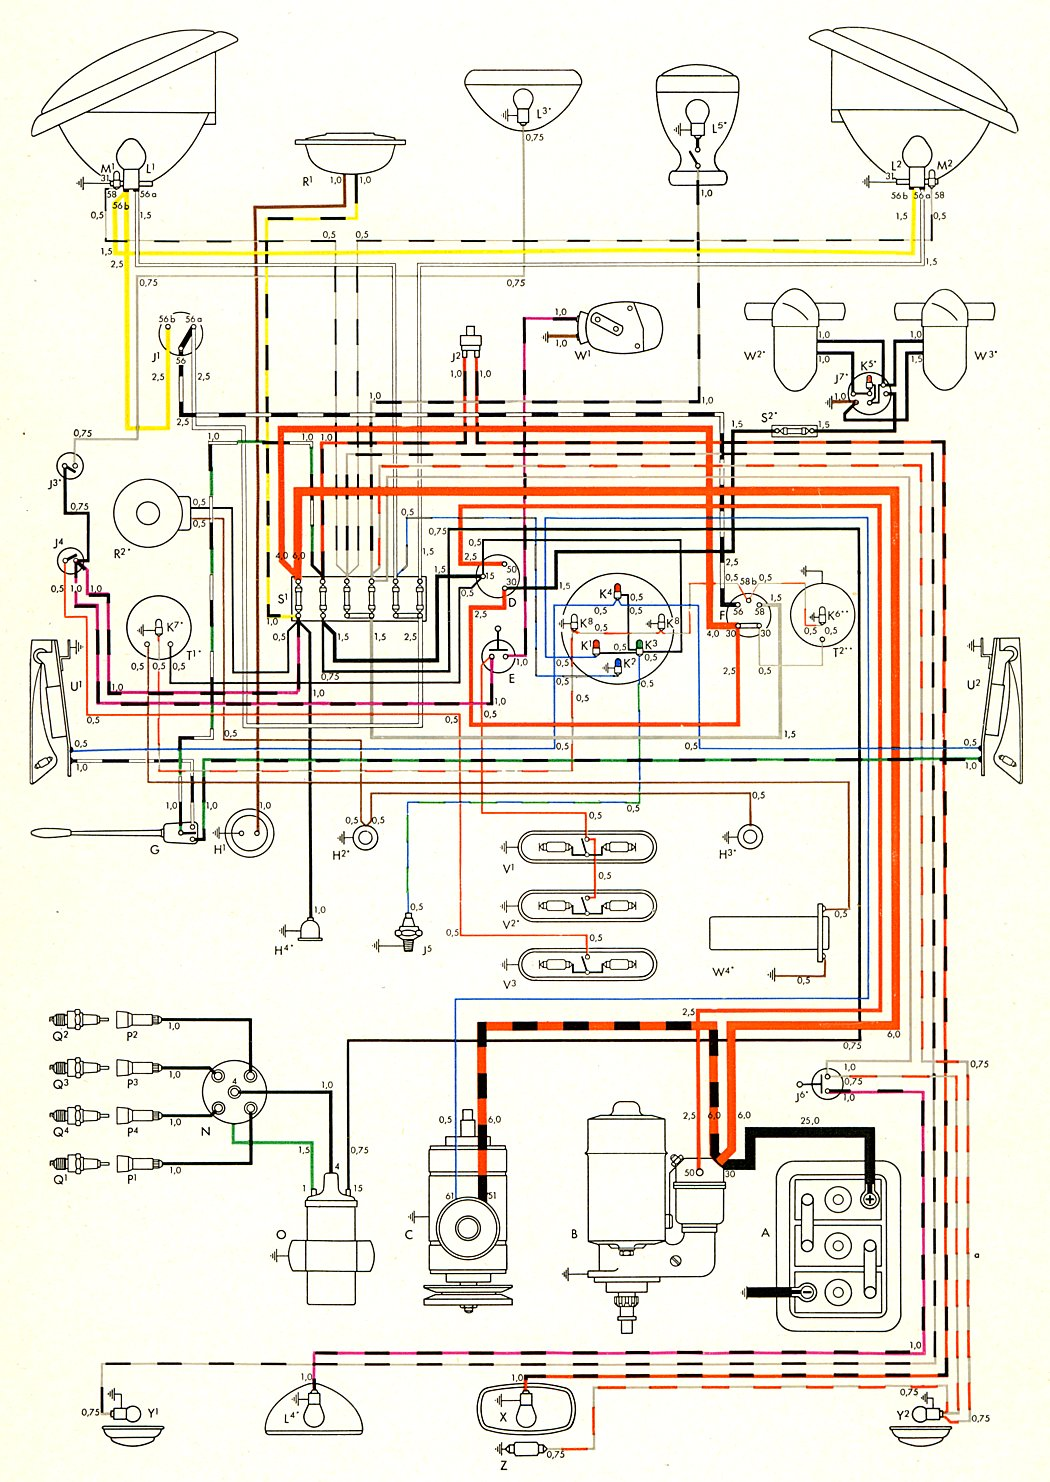 bus_nov57 1957 bus wiring diagram thegoldenbug com Volkswagen Type 2 Wiring Harness at gsmx.co